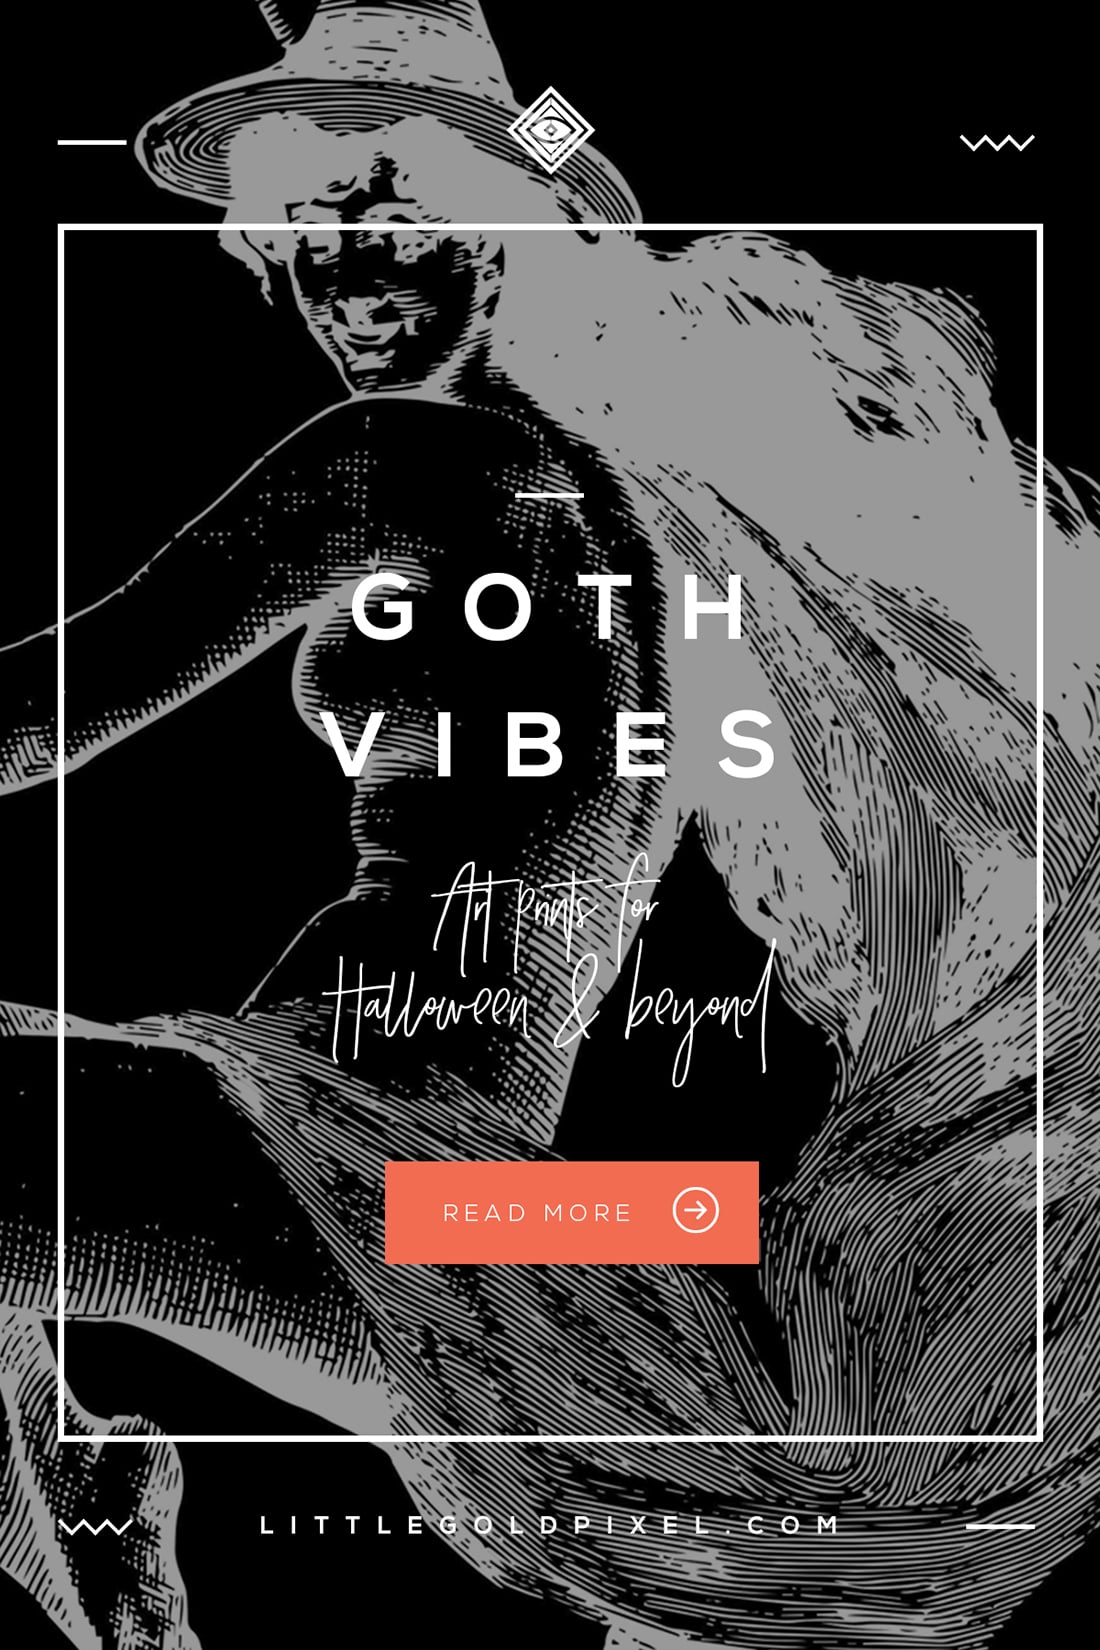 goth art prints • witchy vibes for halloween & beyond • little gold